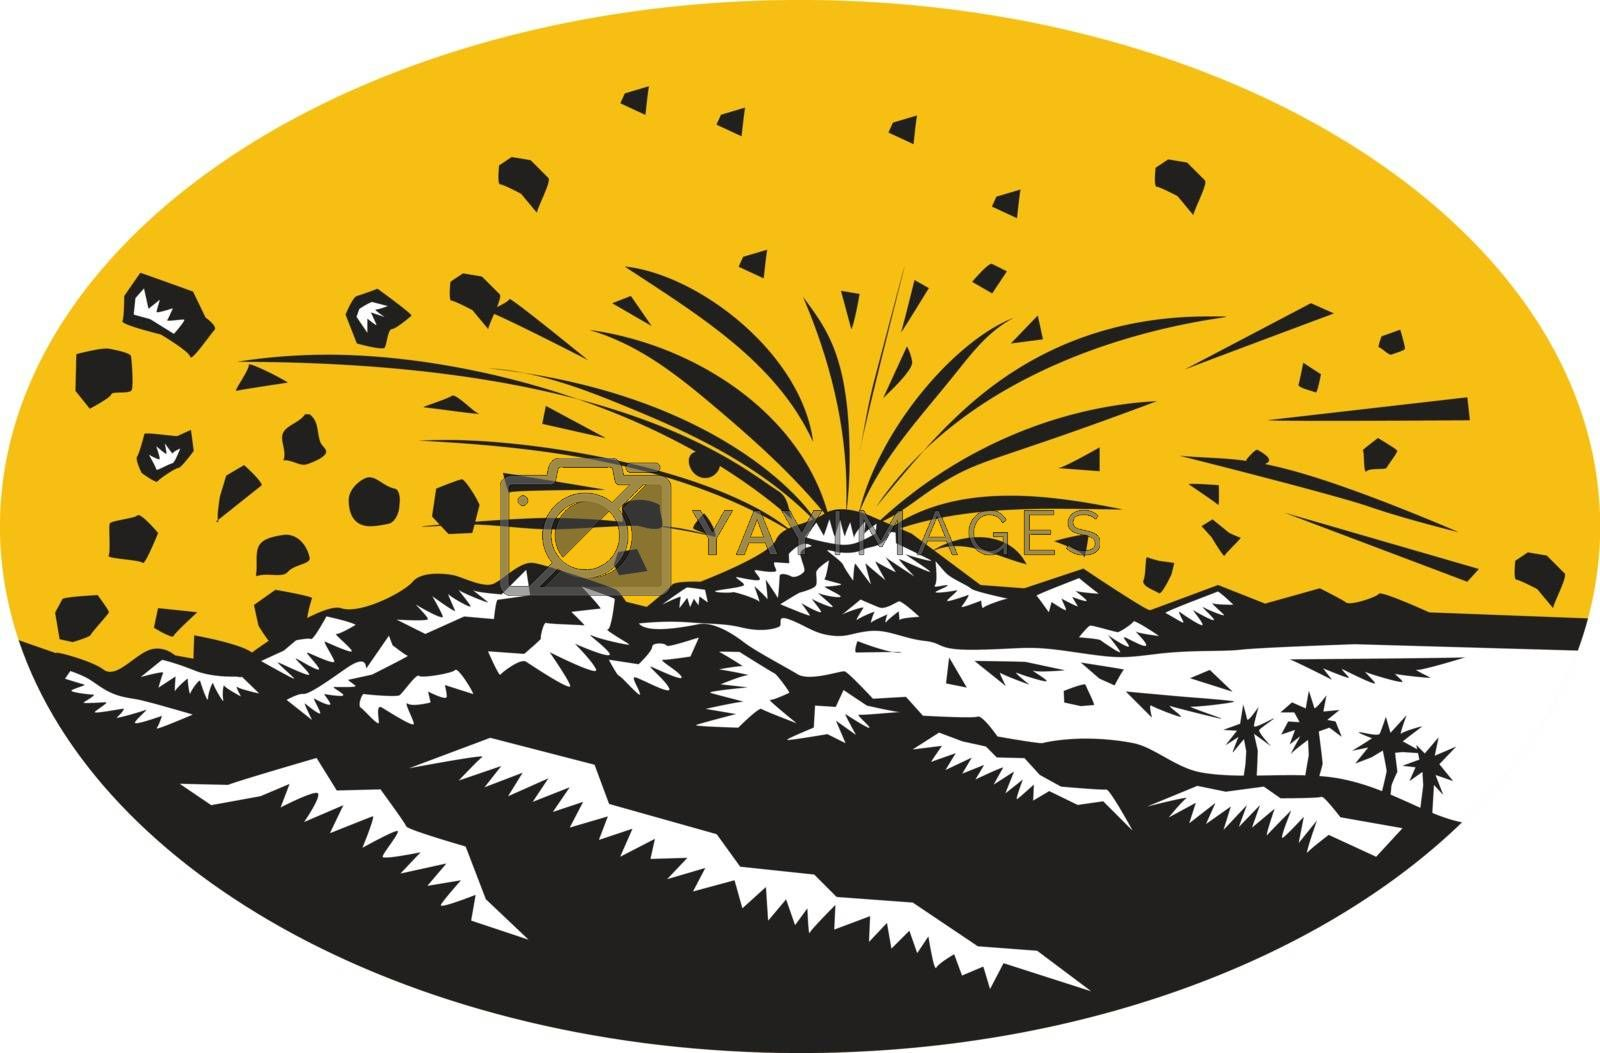 Illustration of a volcano erupting volcanic eruption resulting to island formation set inside oval shape done in woodcut style.